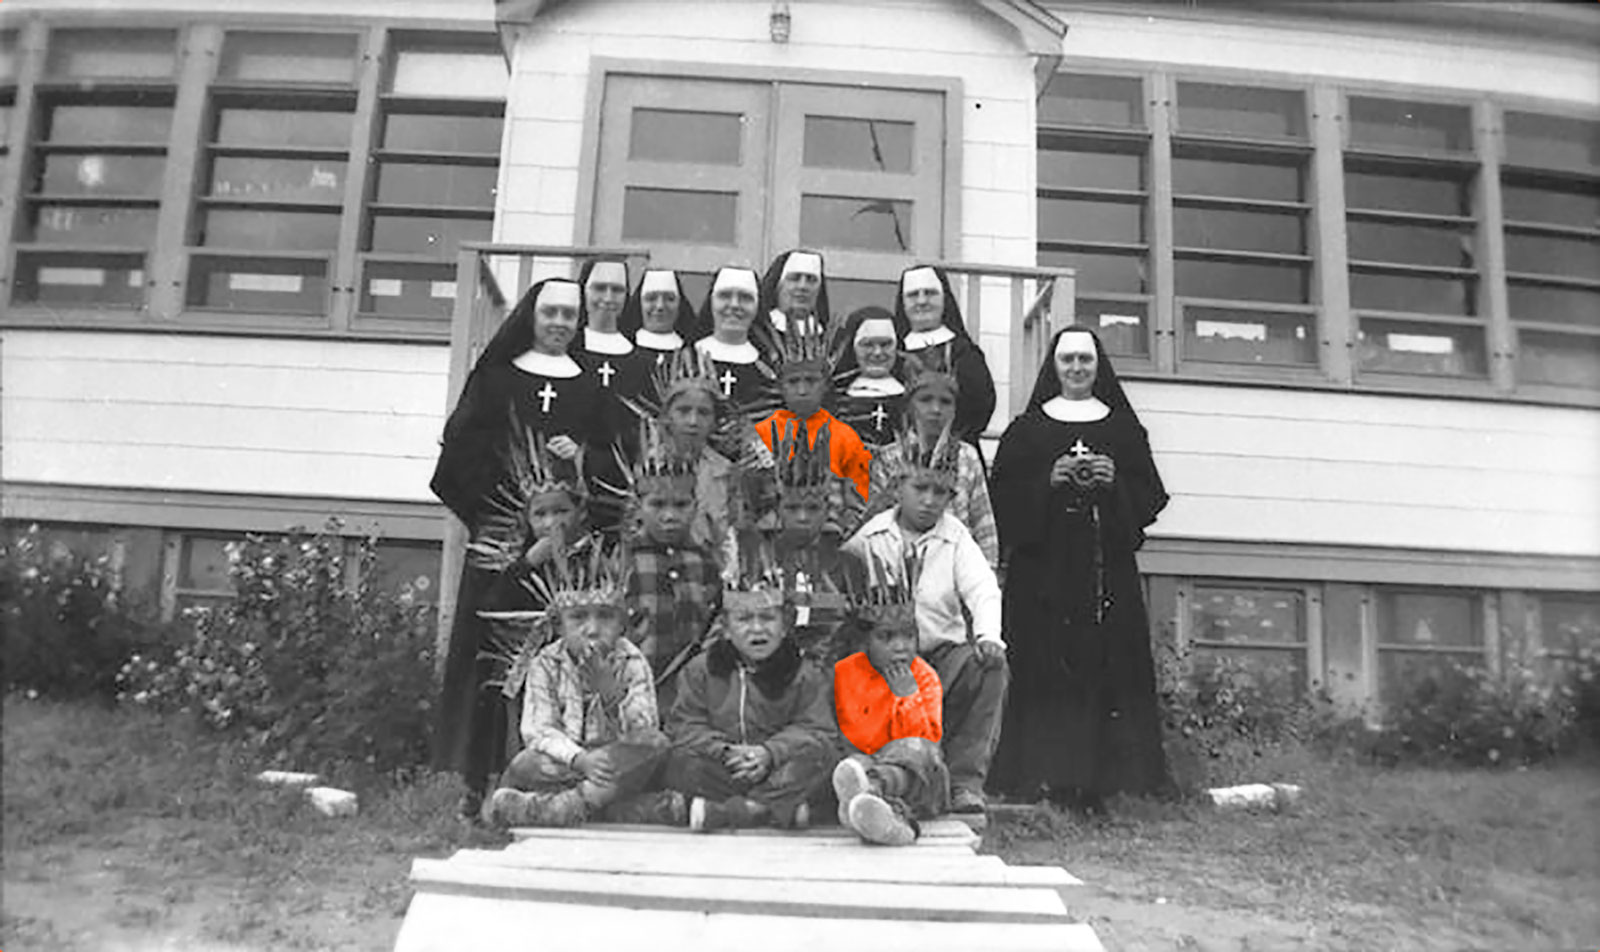 remember me, september 30, orange shirt day, ottawa, pass the feather, indigenous arts collective of canada, residential school, graves, remembrance day, truth and reconciliation,truth and reconciliation